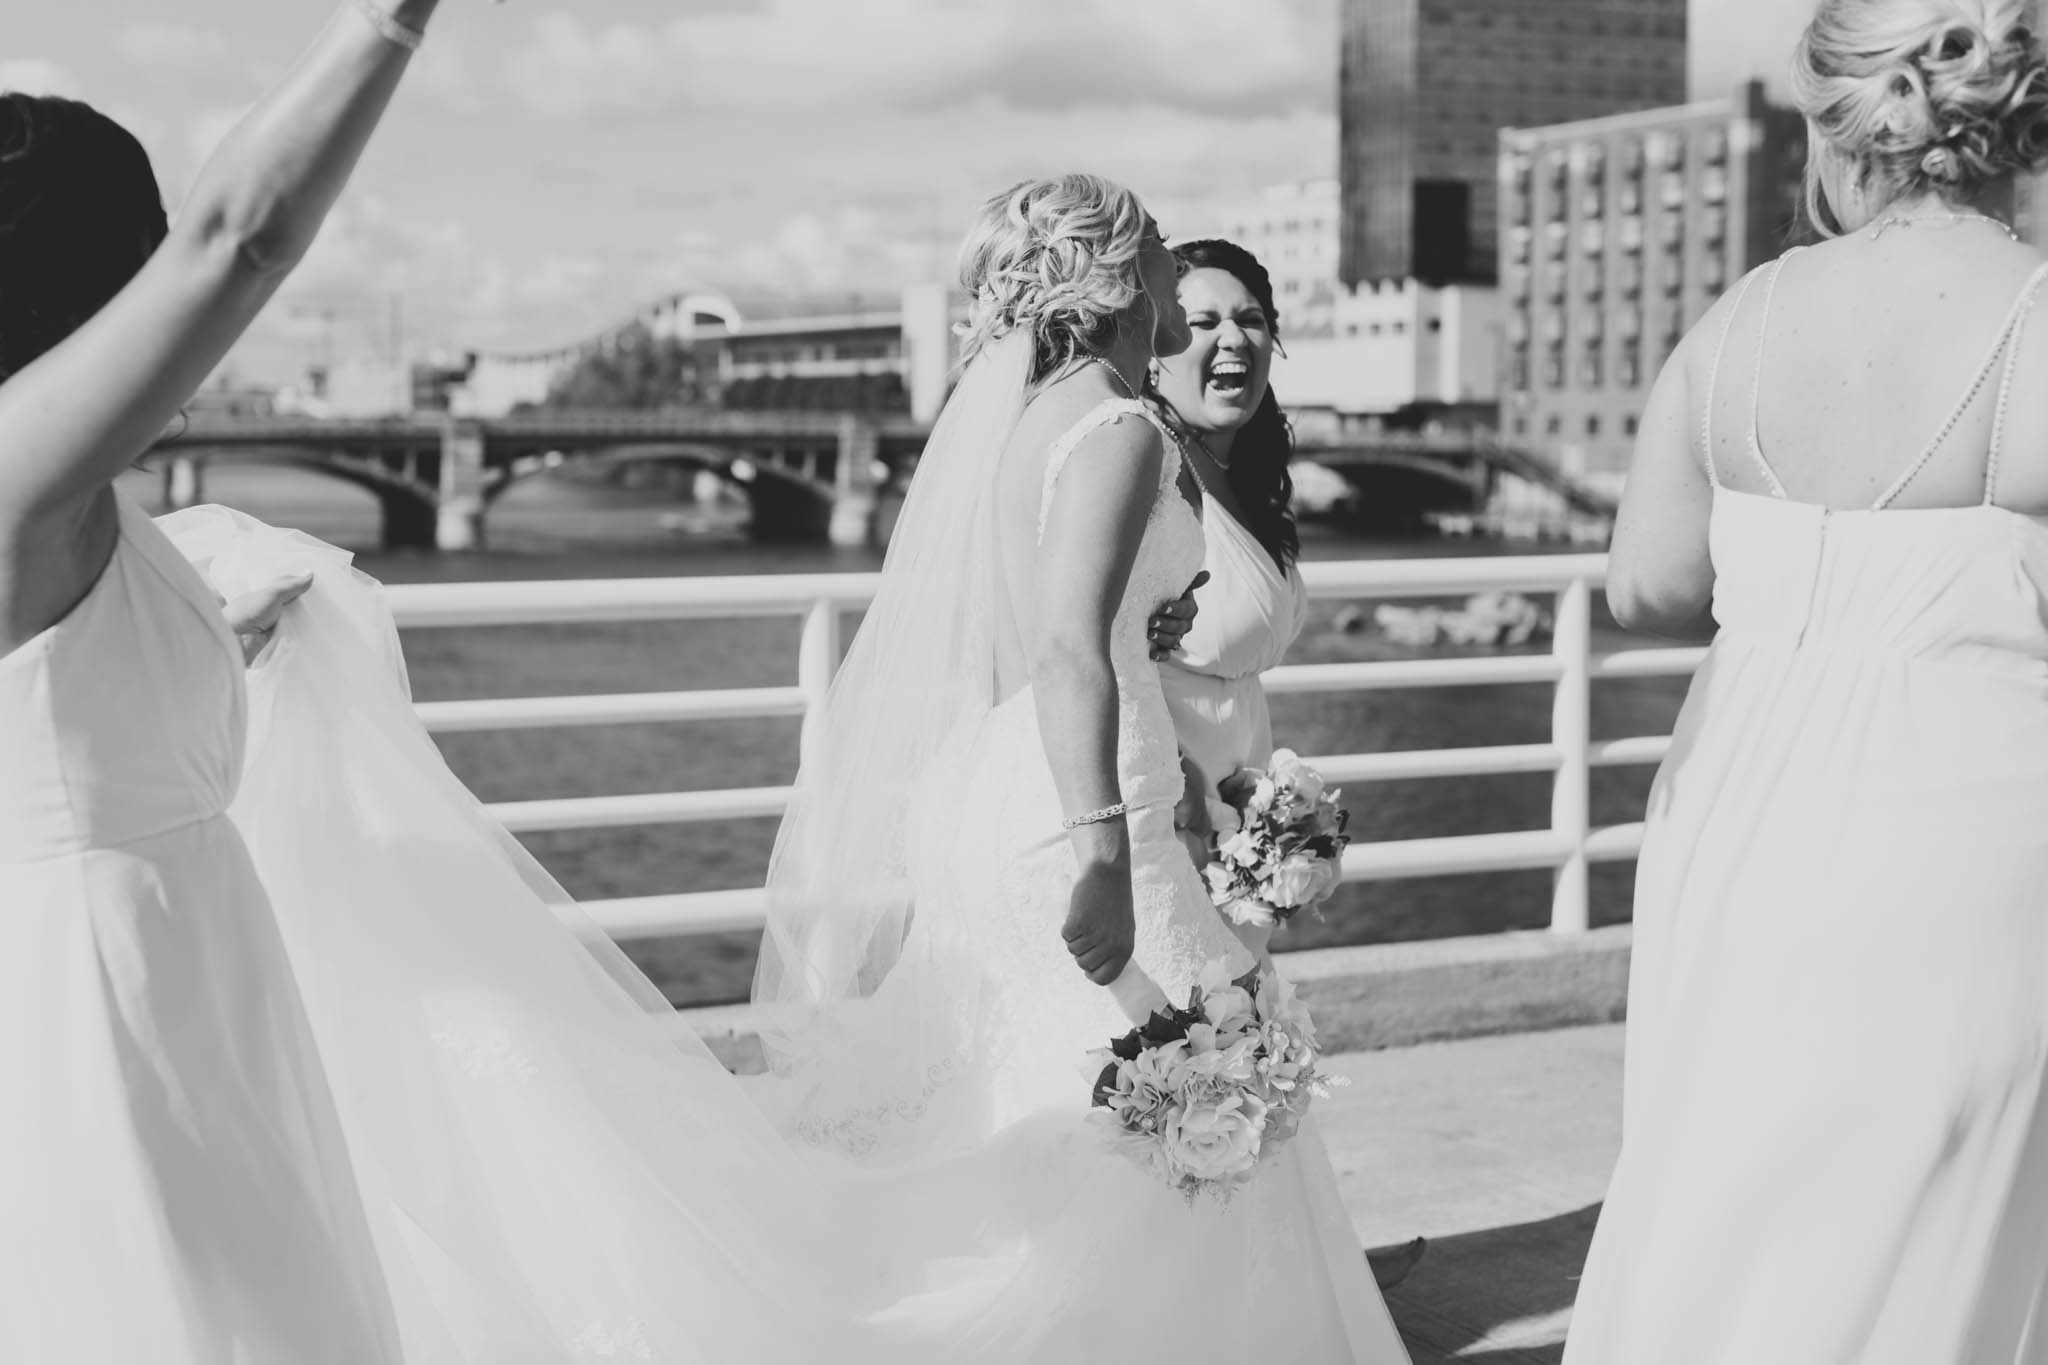 Jillian VanZytveld Photography - Grand Rapids Lifestyle Wedding Photography - 106.jpg